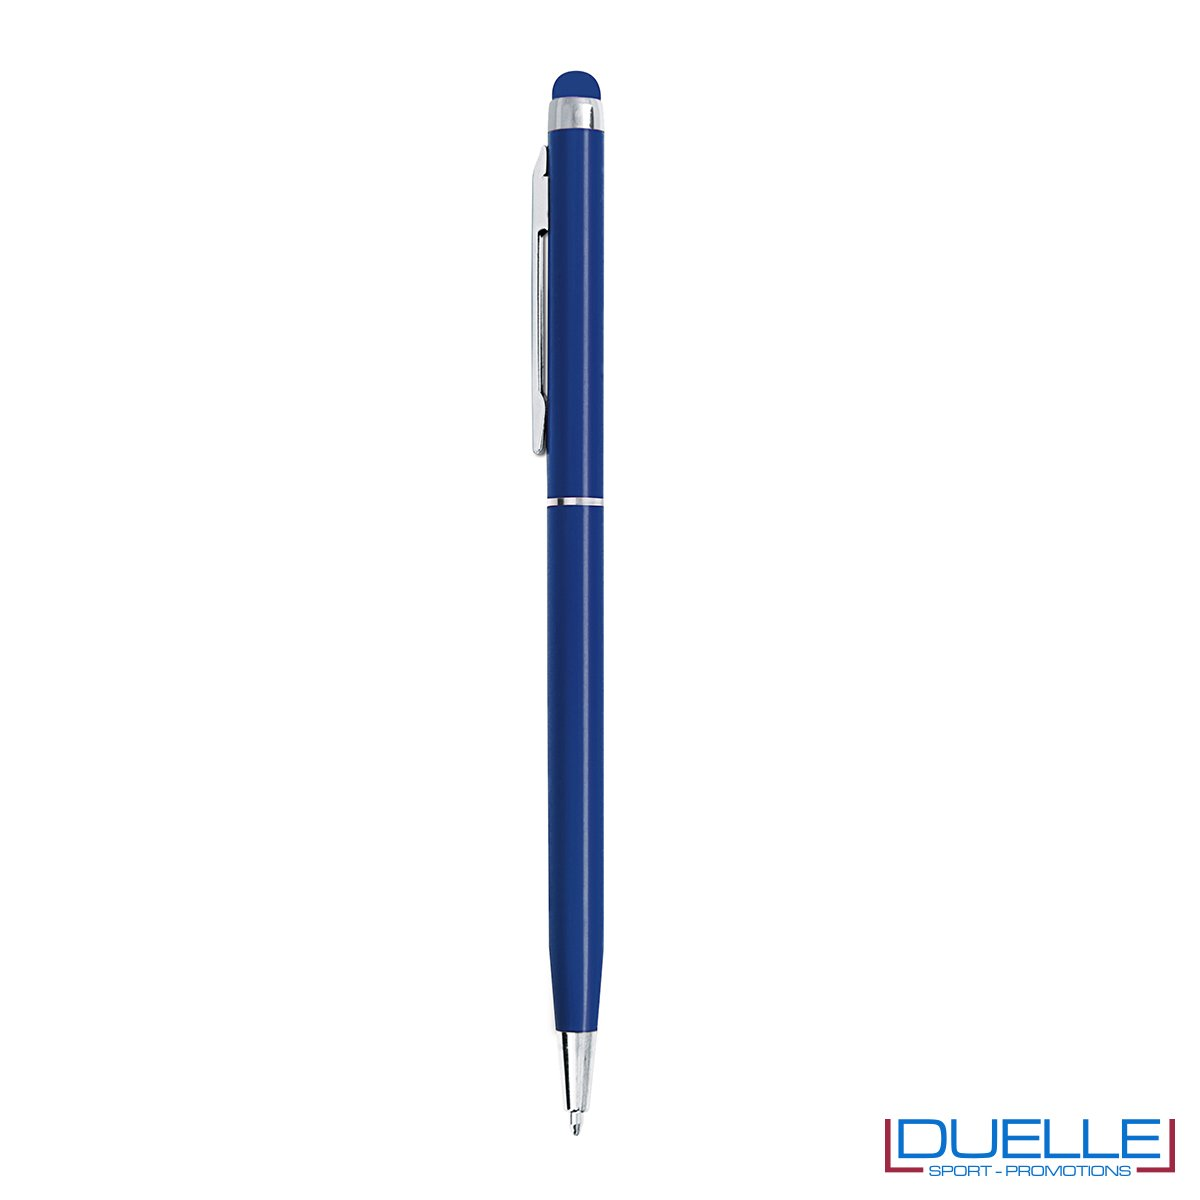 penna touch screen personalizzate in metallo blu, penne touch personalizzate blu